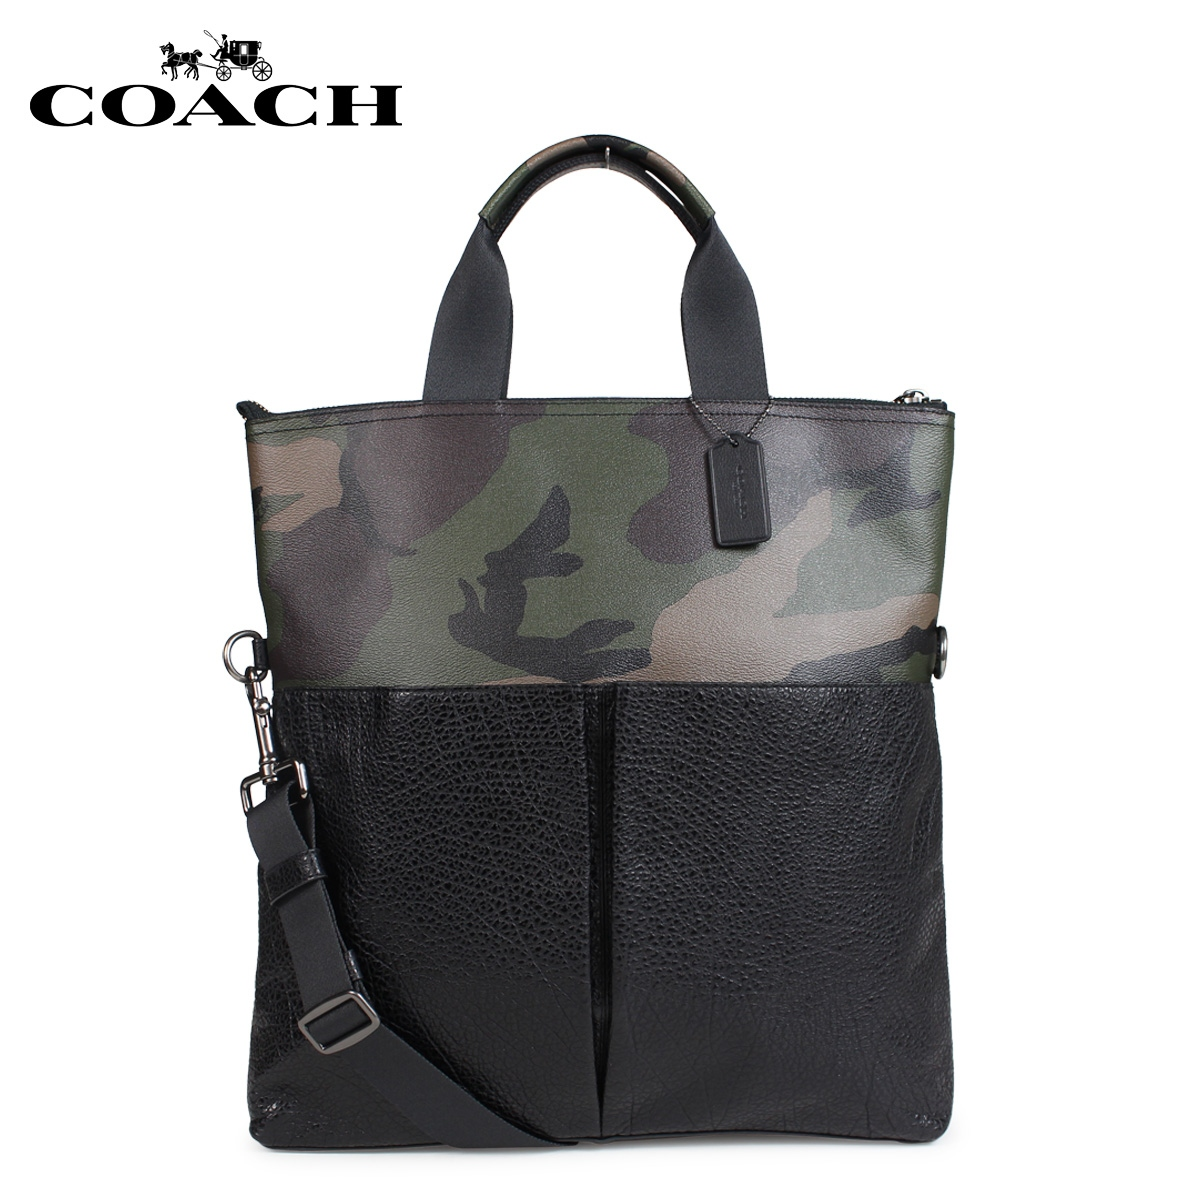 d939a819d104 COACH coach bag tote bag men 2WAY green duck F29706  load planned Shinnyu  load in reservation product 11 9 containing